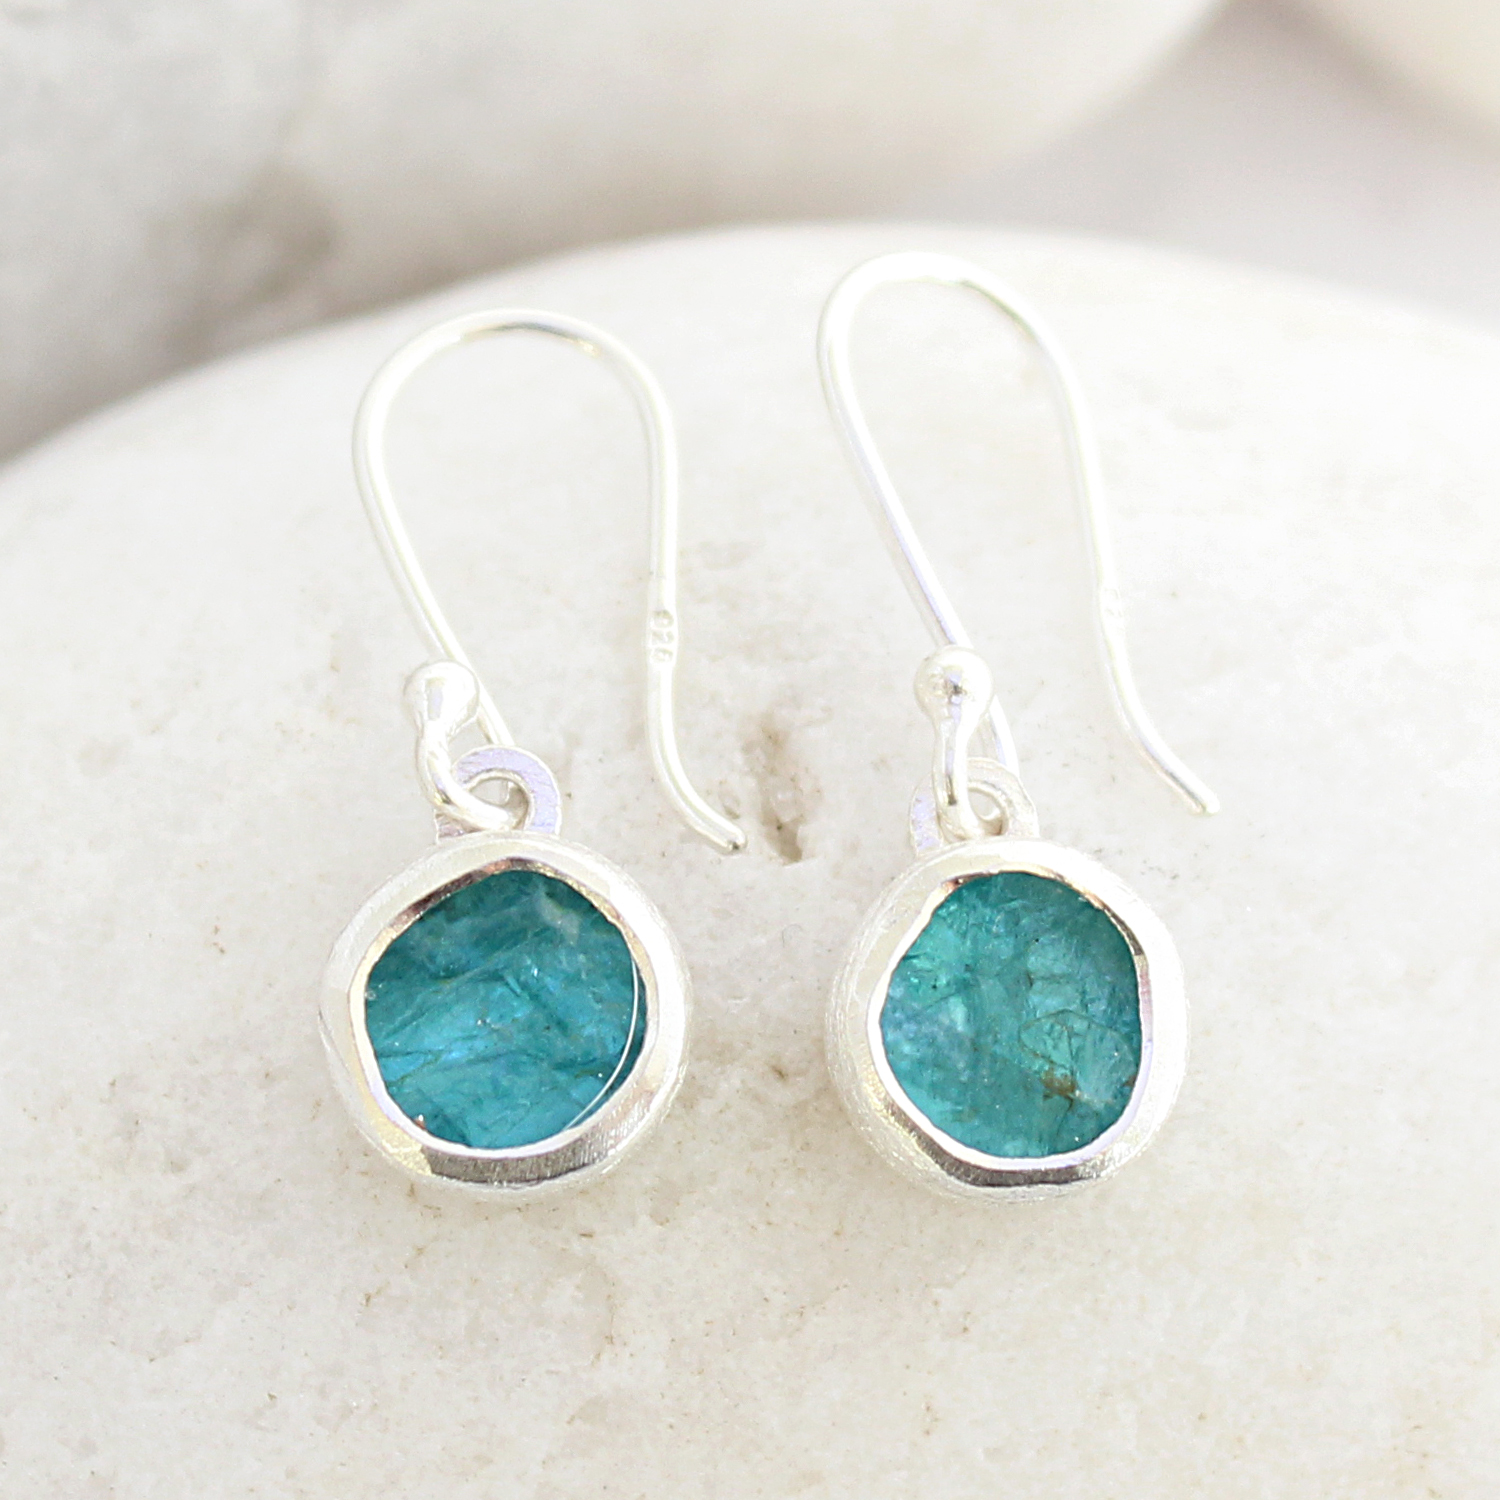 pin wrap jewelry handmade earrings sterling wire dangle green apatite